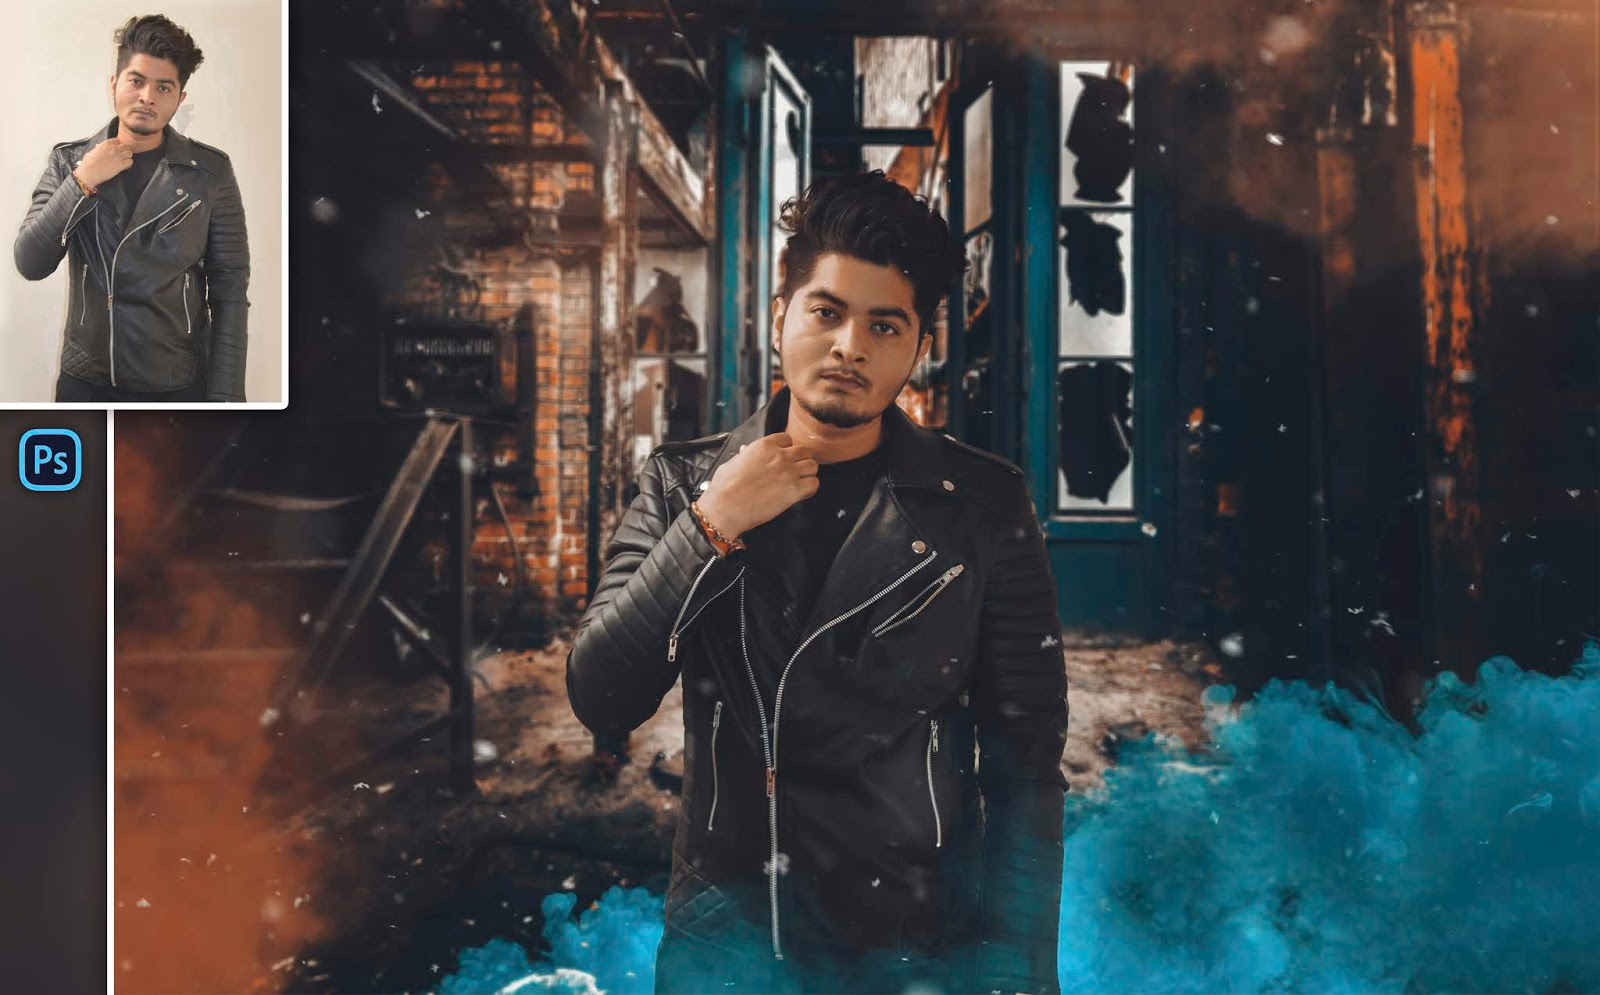 Cinematic Color Smoke Bomb Instagram Moody Photo Editing in Photoshop cc